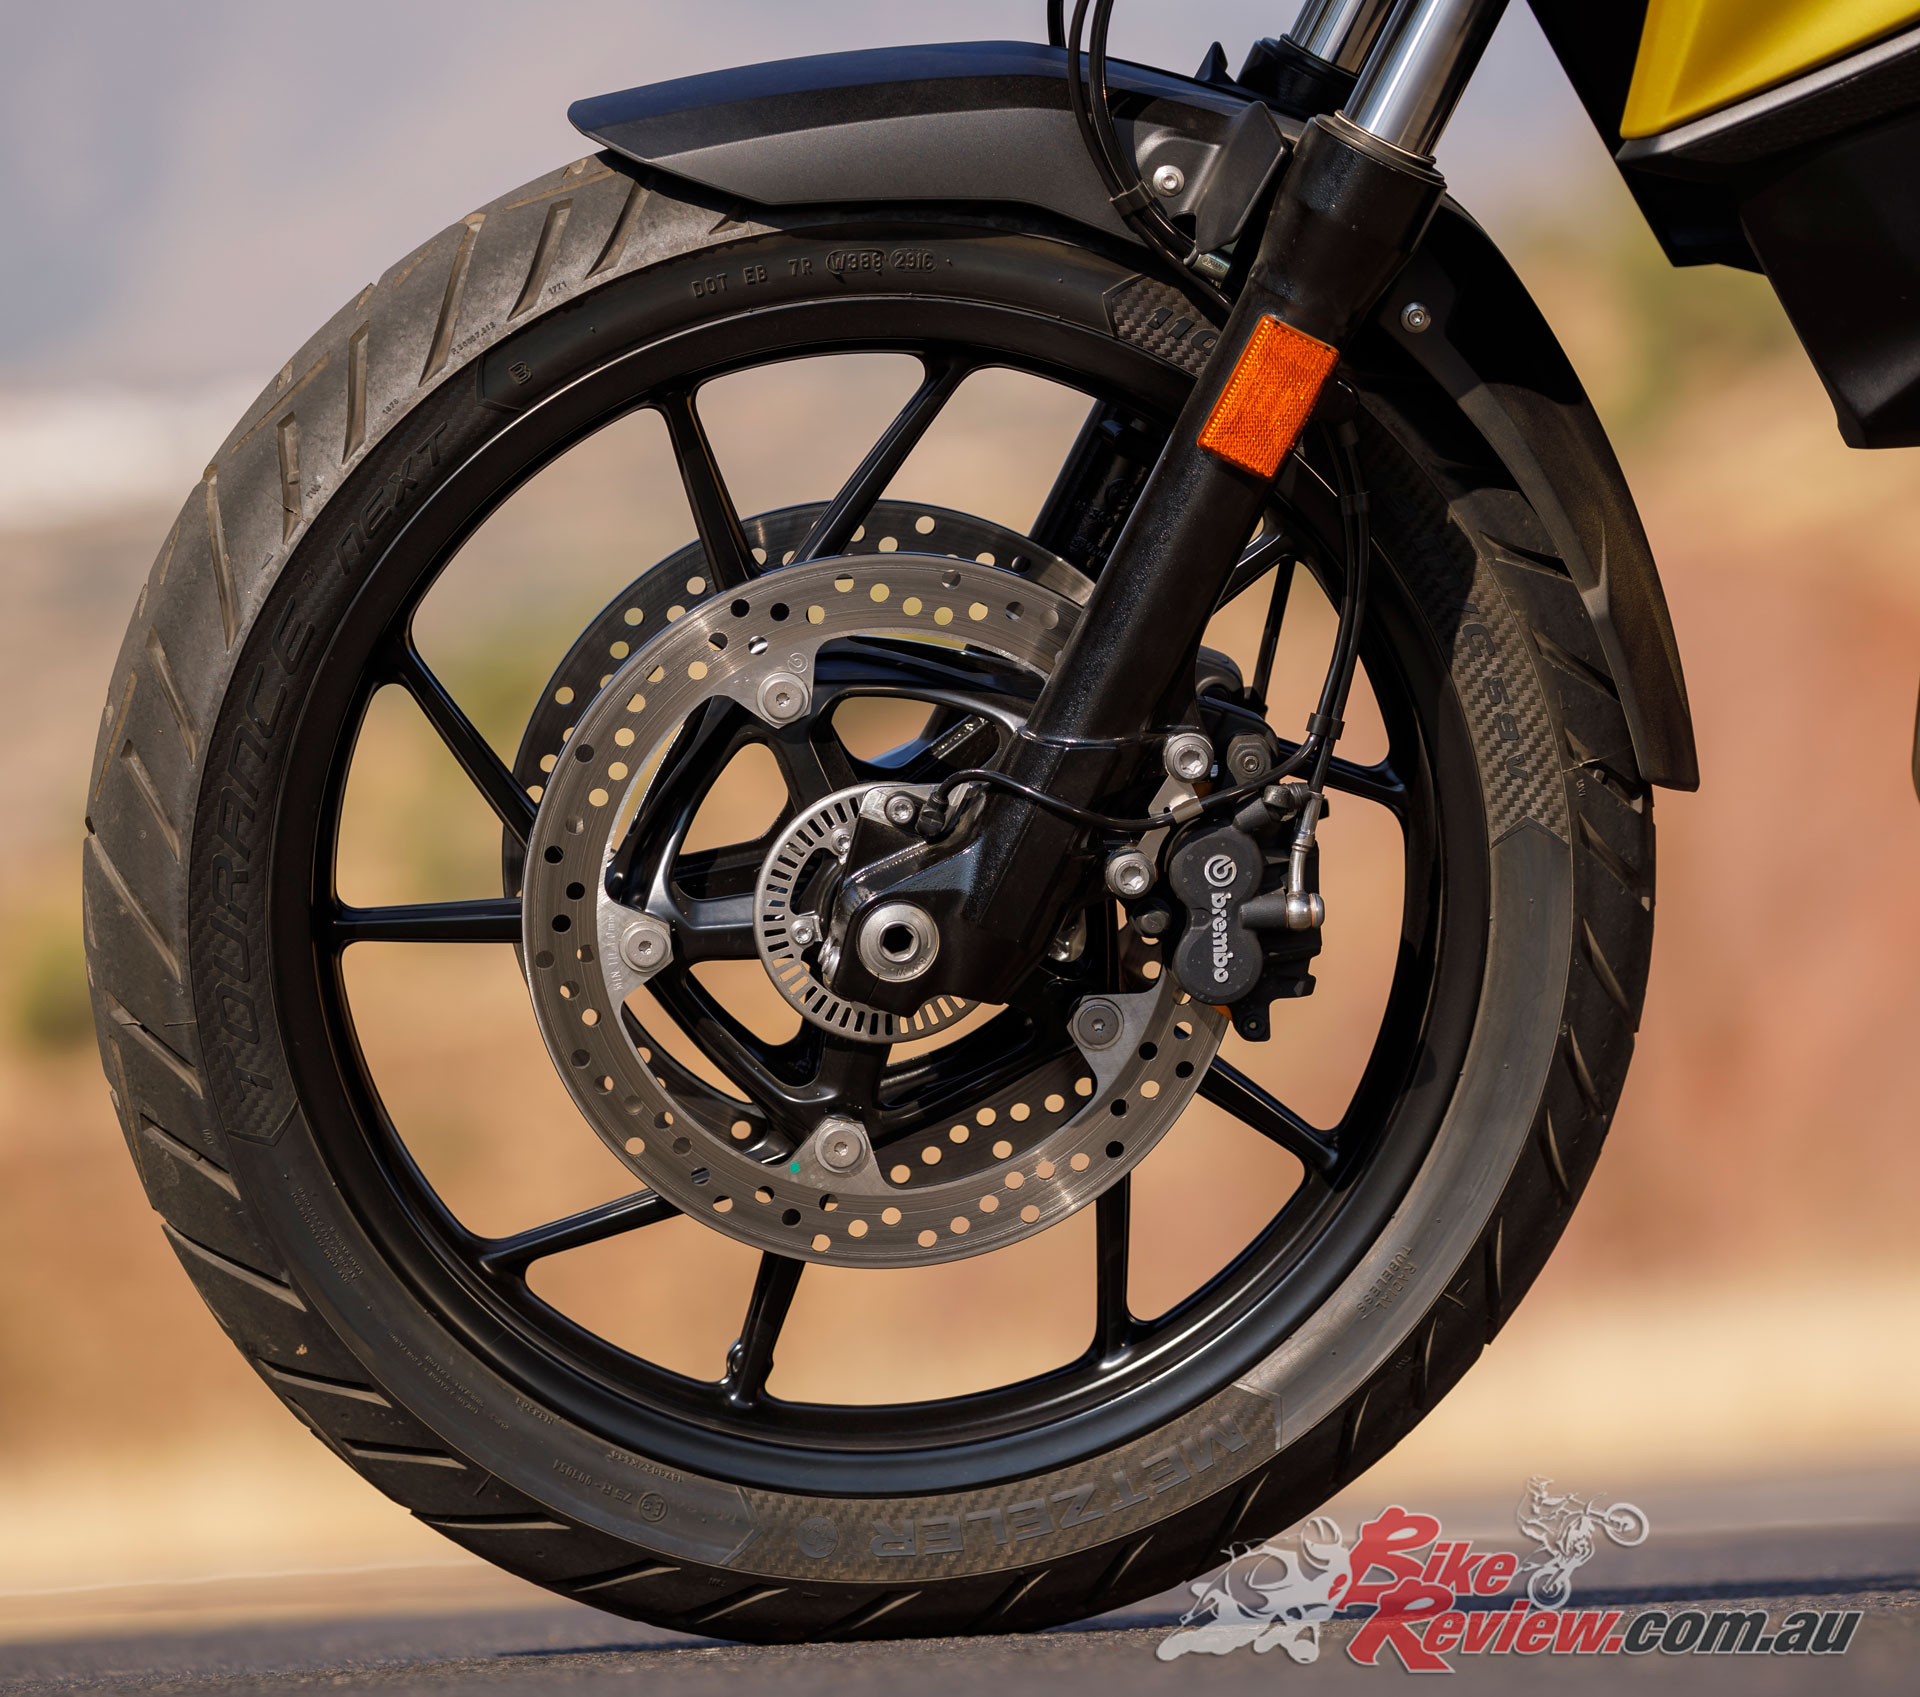 The 2019 F 750 GS features a 19in alloy front wheel, unlike the 850 with a 21in and spoked rims